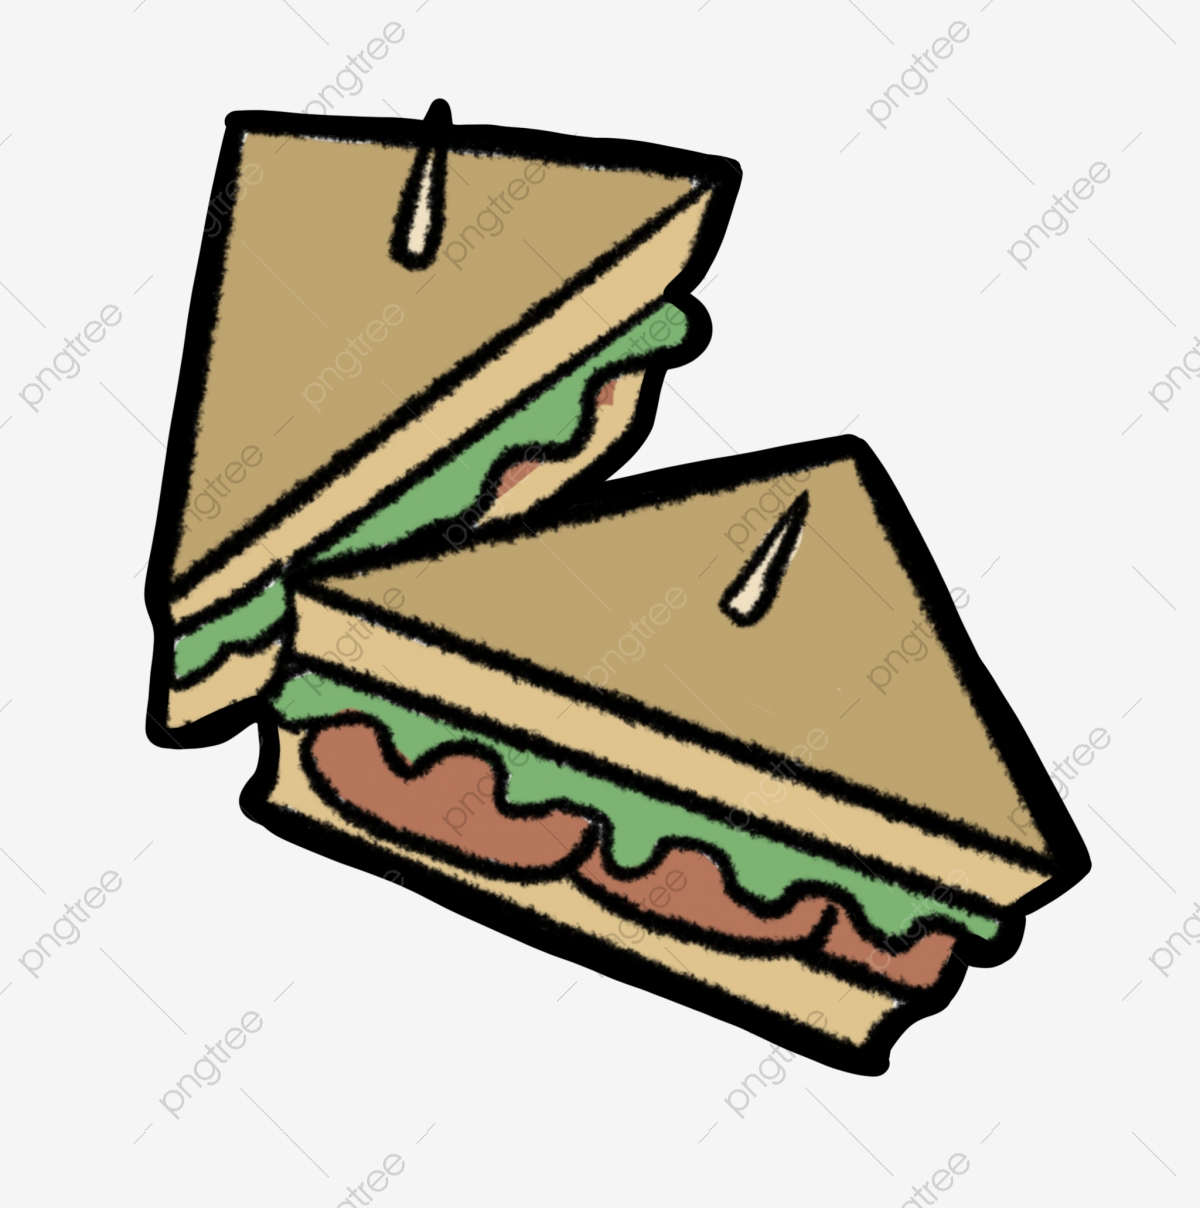 delicious sandwich cartoon illustration snacks sandwiches food png transparent clipart image and psd file for free download https pngtree com freepng delicious sandwich cartoon illustration 4736002 html